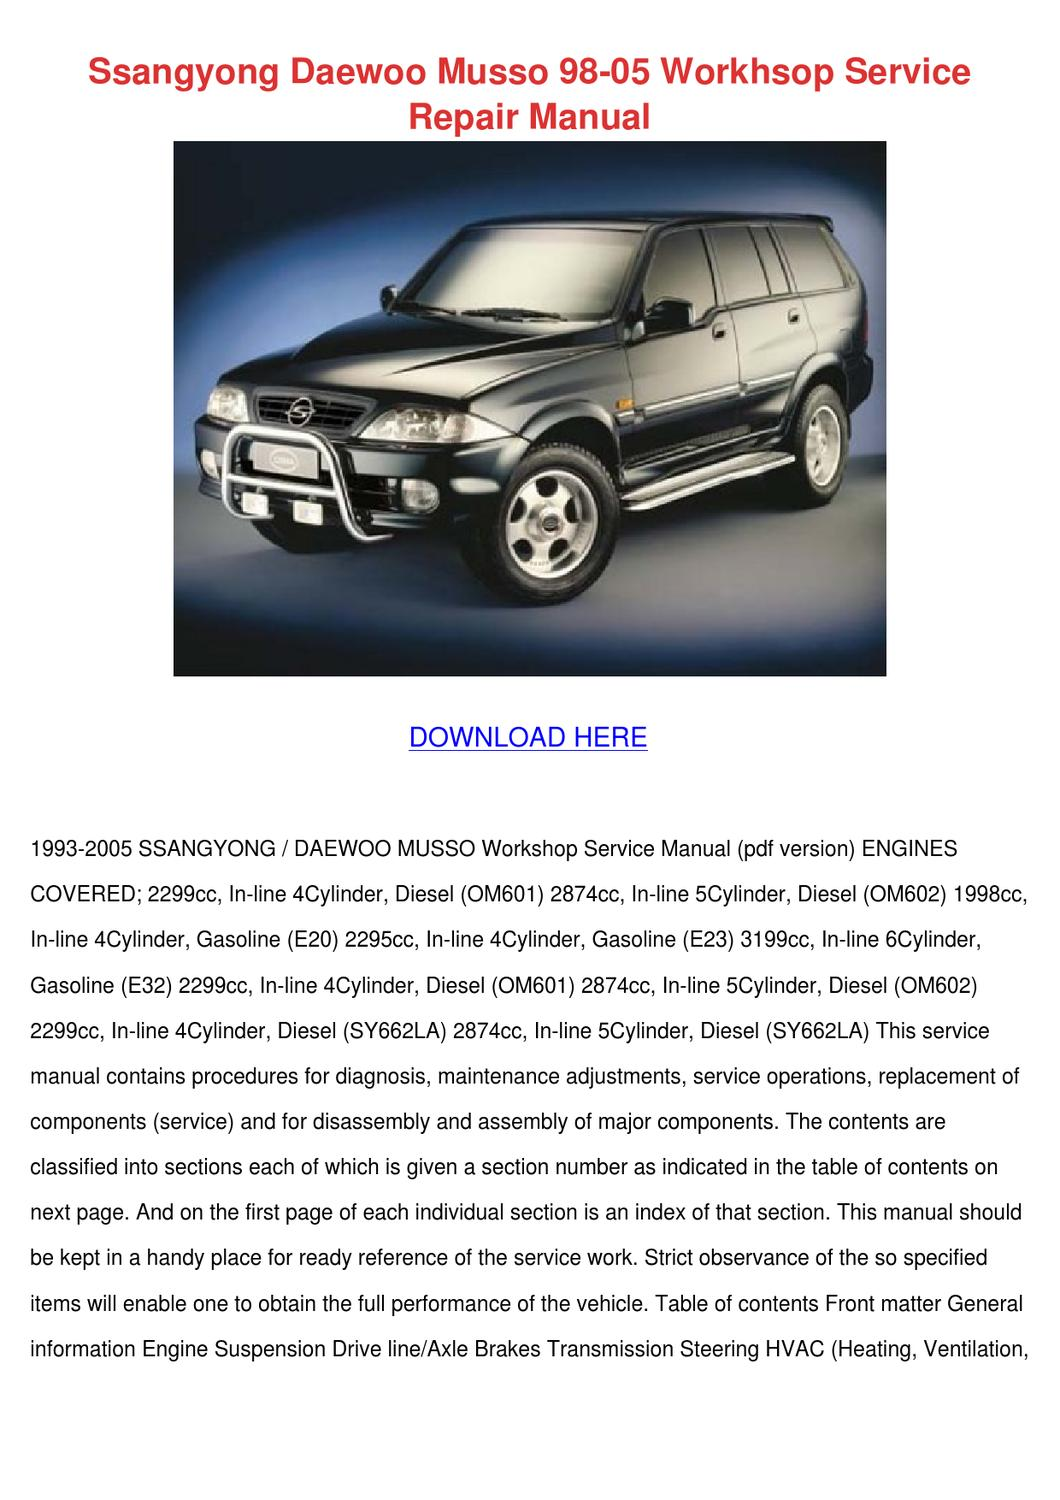 Daewoo Cielo Workshop Manual Free Download Wiring Library 1997 Ssangyong Musso 98 05 Workhsop Service By Letha Barreneche Issuu